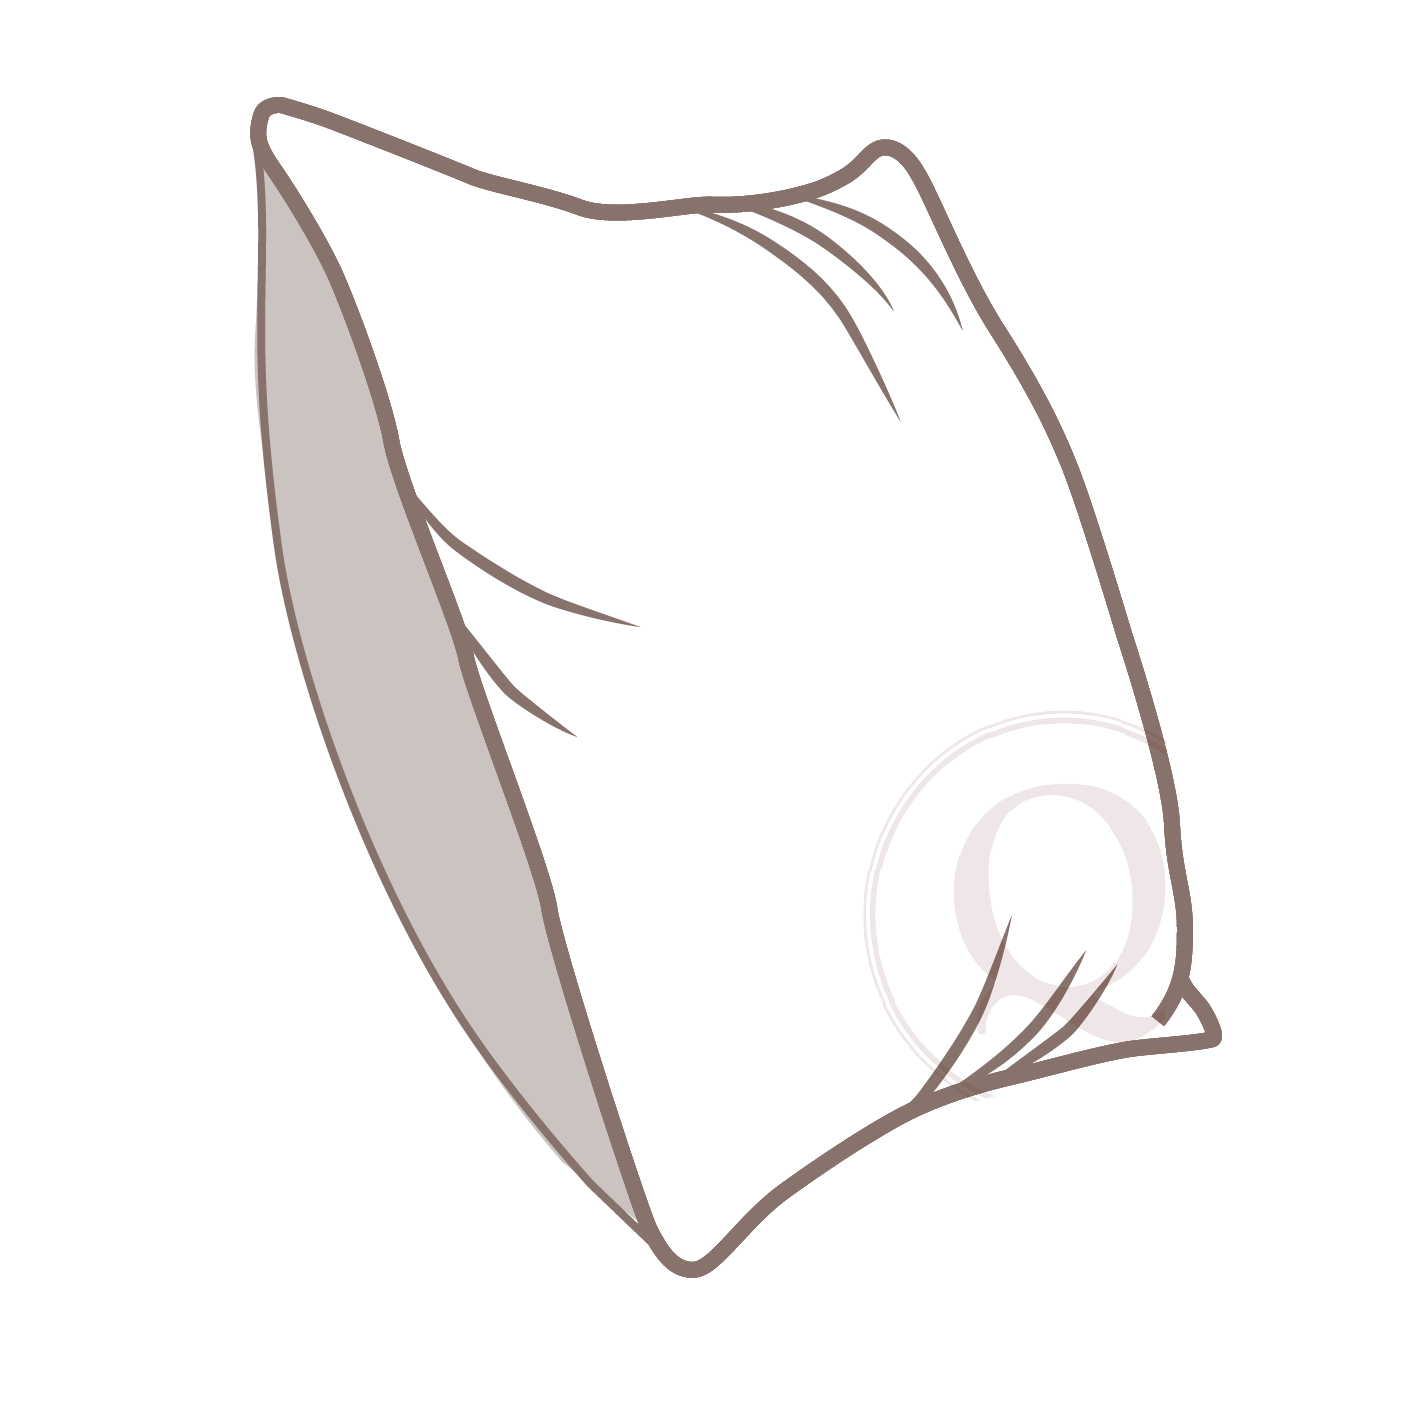 KNIFE EDGE - The most common form of pillow edge, 2 pieces of fabric sewn together at the edges to form a sharp seam and tapered corners. They tend to be fuller in the middle and have thinner edges. Pillows finished this way offer a clean design with no added ornamentation.